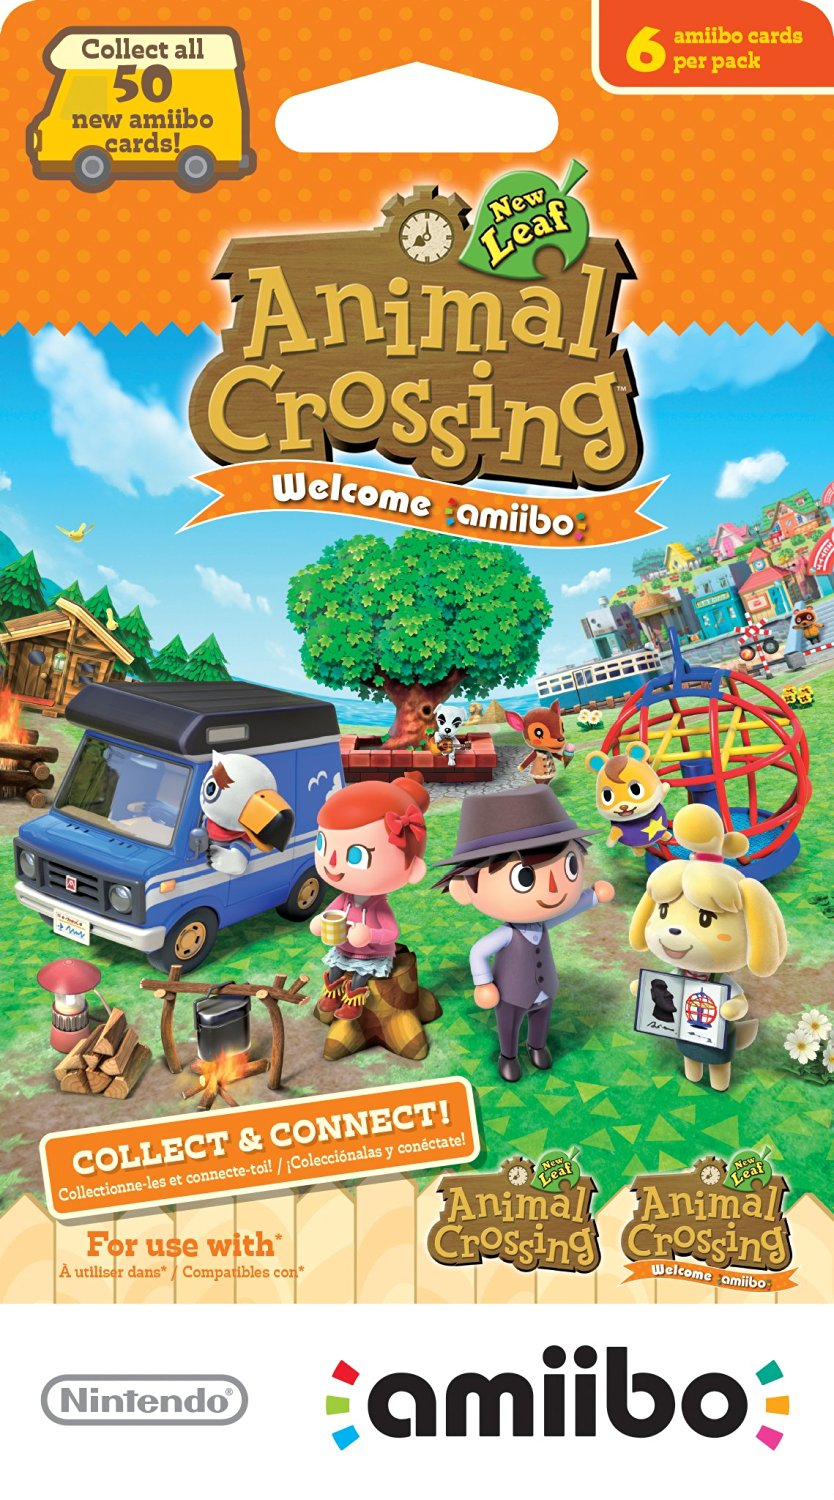 Amiibo Crossing Animal Crossing New Leaf Welcome Amiibo Cards 6 Pack Package